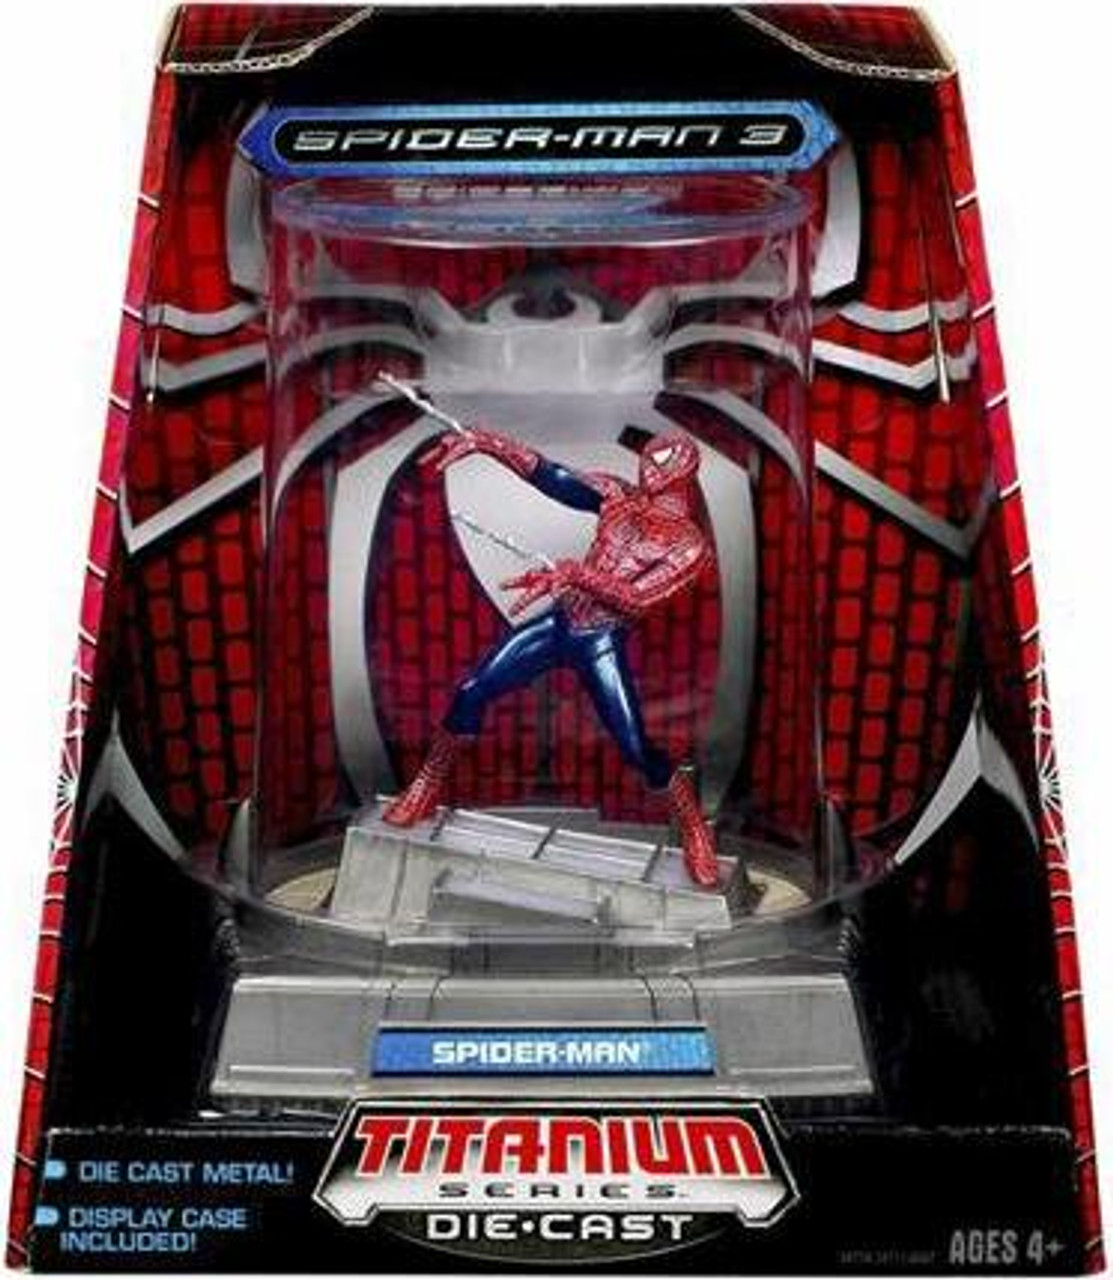 Spider-Man 3 TItanium Series Spider-Man Diecast Figure